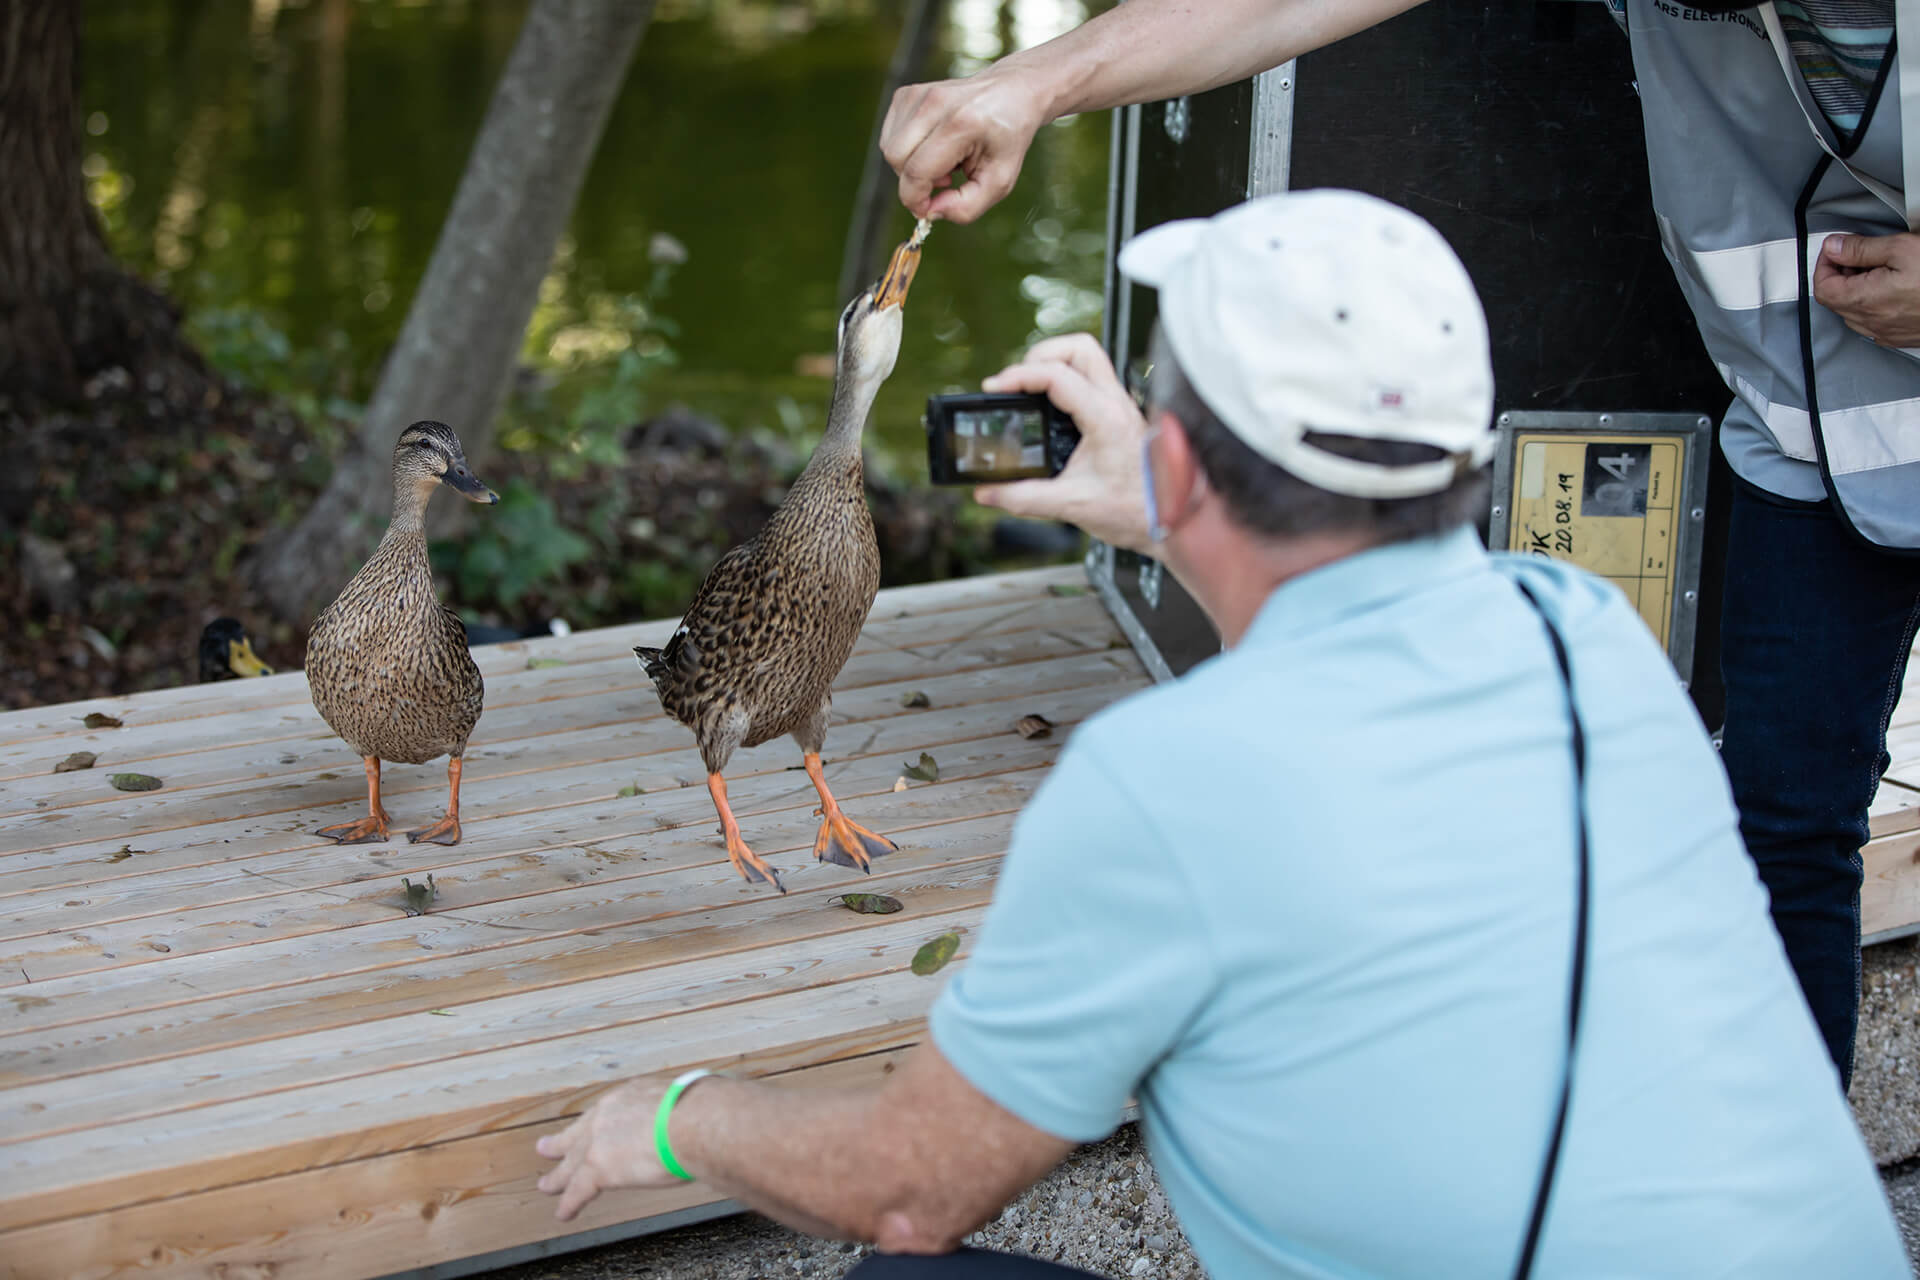 Visitors feeding ducks at the JKU Campus | In Kepler's Gardens | Ars Electronica | STIRworld